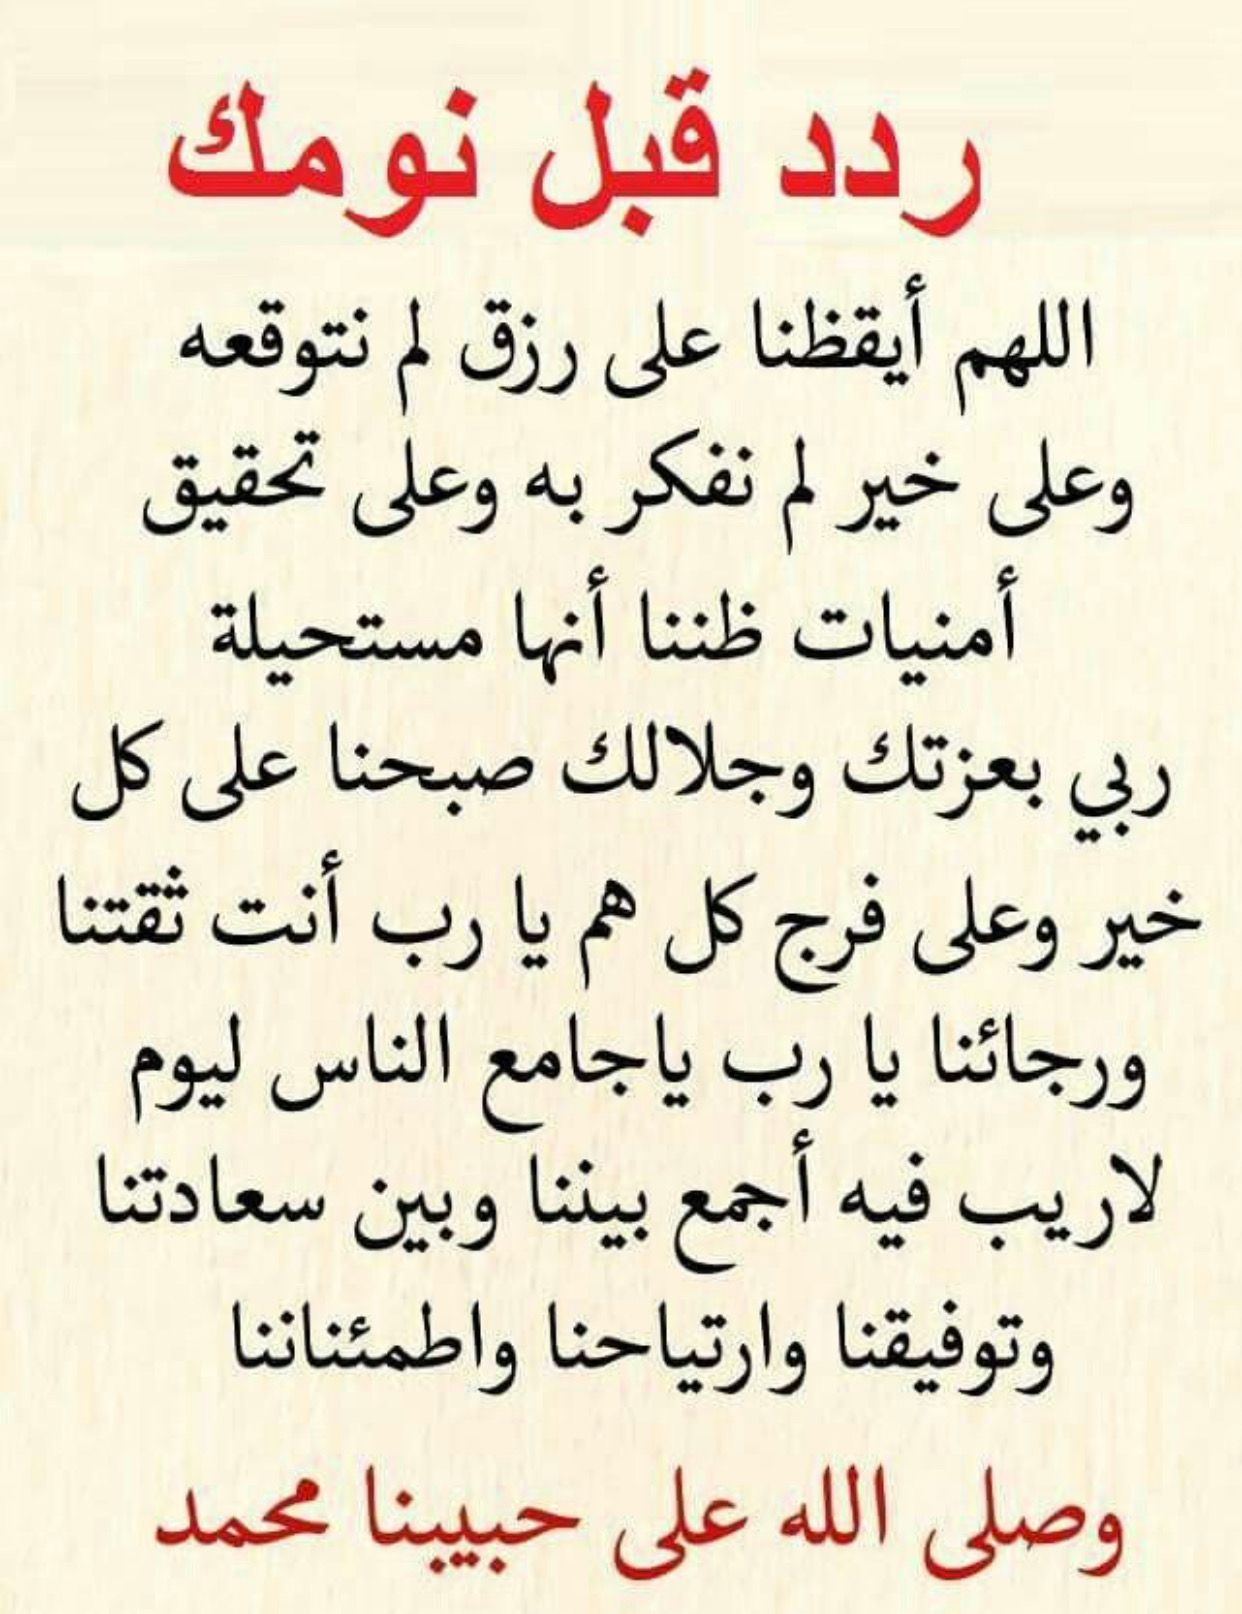 Pin By Queen 433 On اذكارات Islamic Inspirational Quotes Islam Facts Islamic Phrases